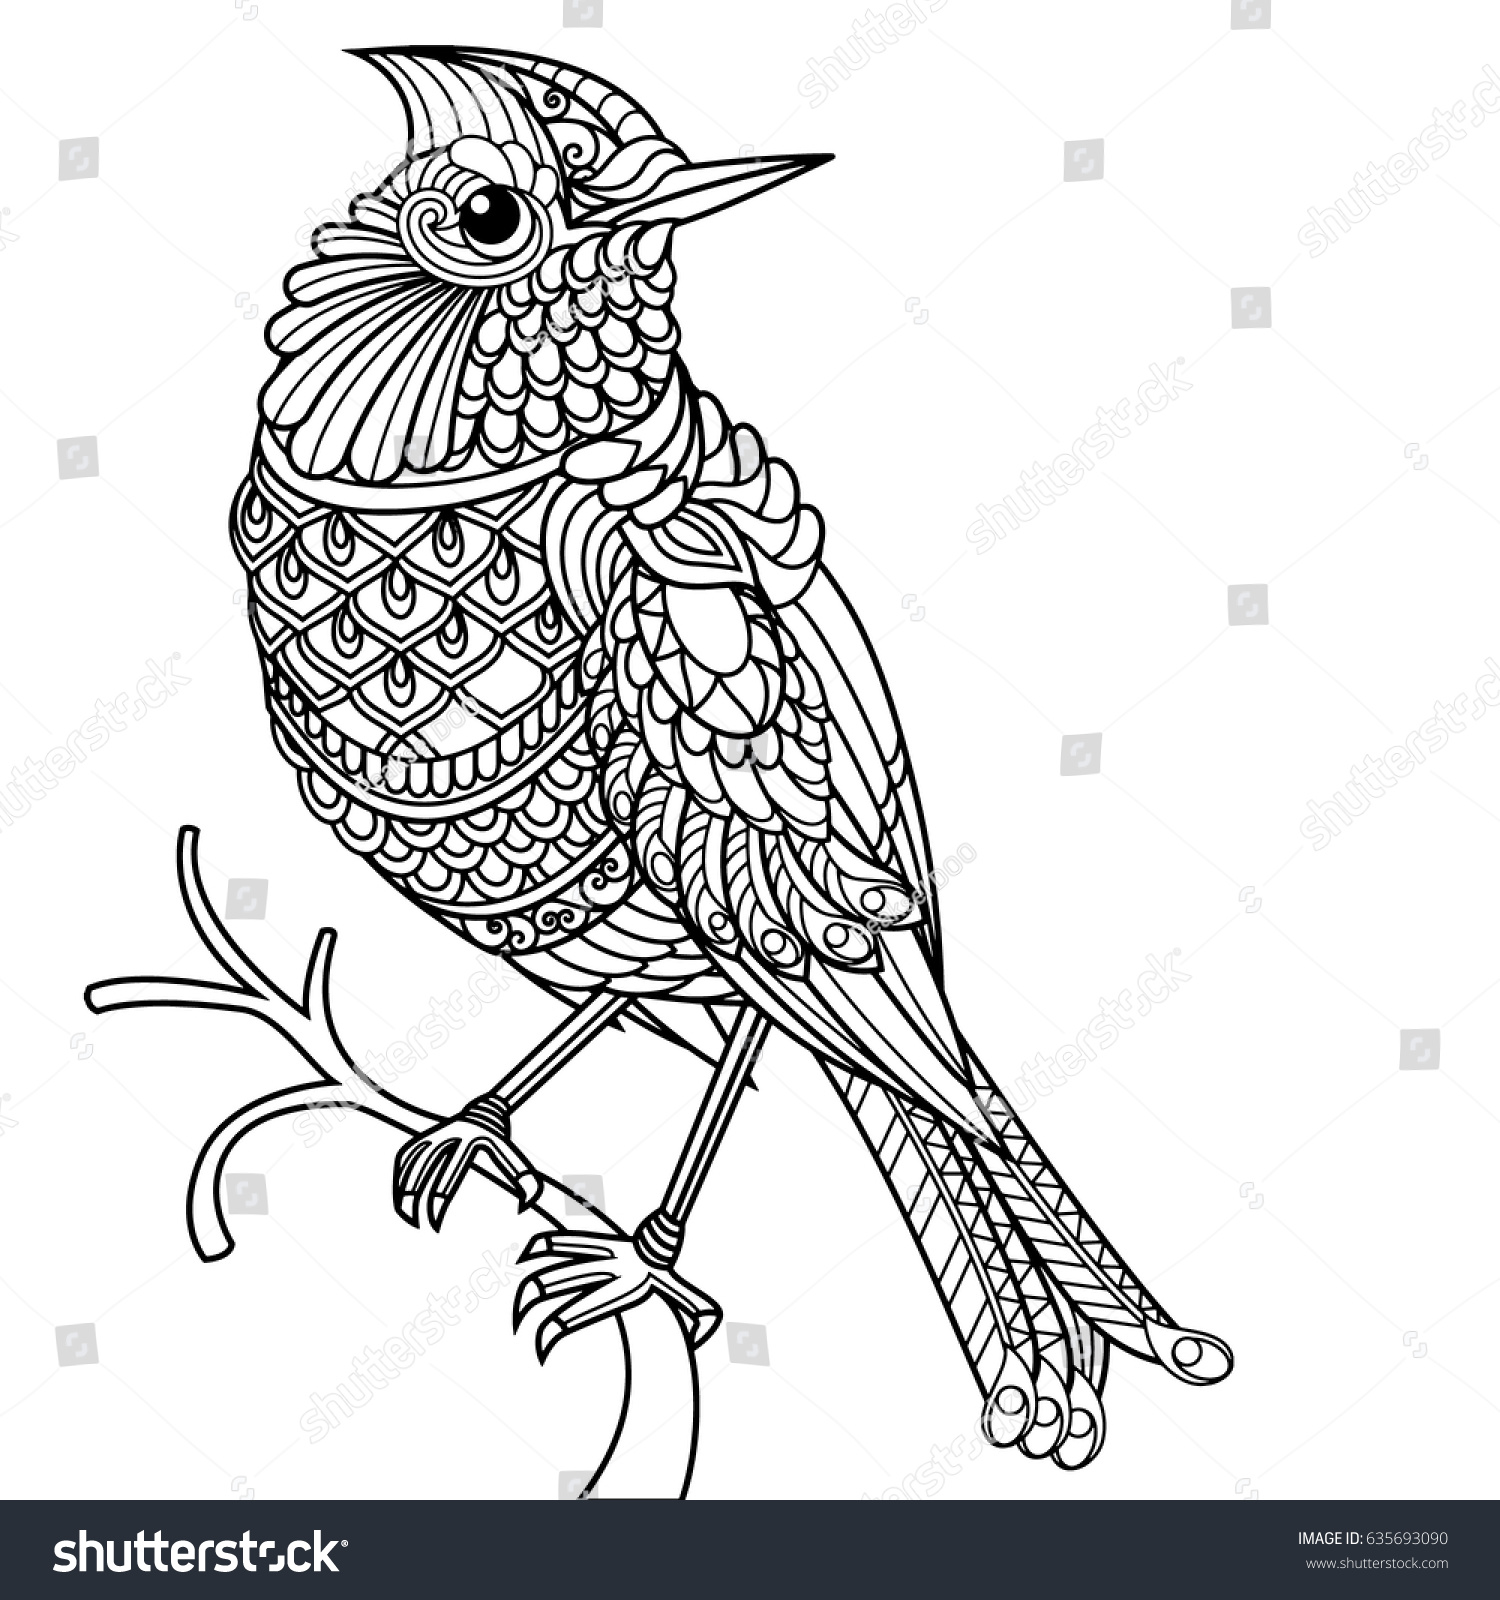 Bird Coloring Book Adults Stock Vector 635693090 - Shutterstock